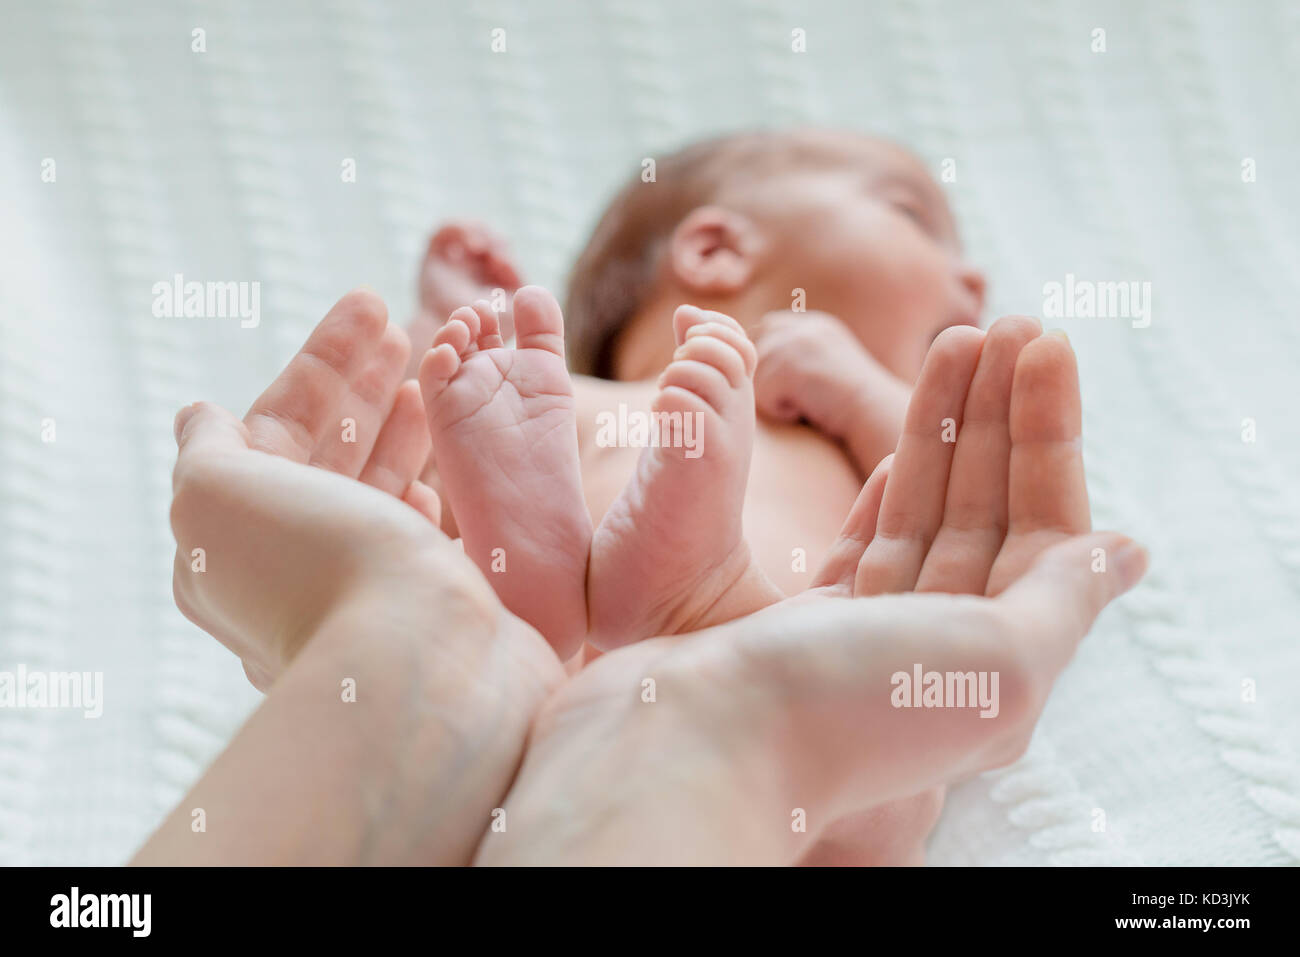 Baby feet in mother hands - Stock Image